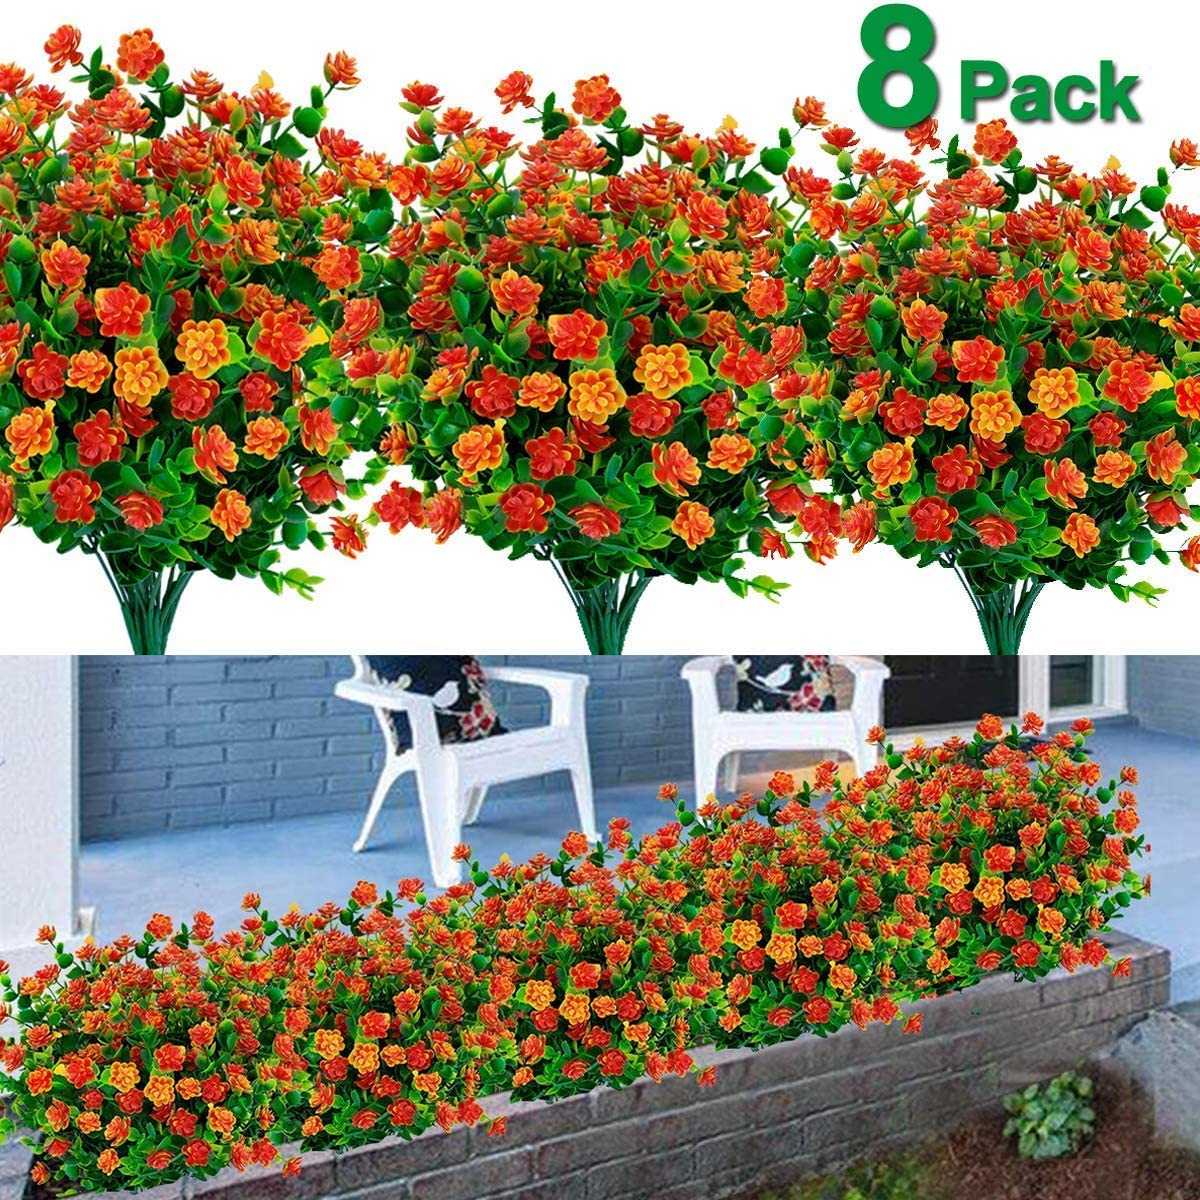 8PCS Artificial Flowers Outdoor UV Resistant Plants, 8 Branches Faux Plastic Corn-flower Greenery Shrubs Plants Indoor Outside Hanging Planter Kitchen Home Wedding Office Garden Decor (Orange)